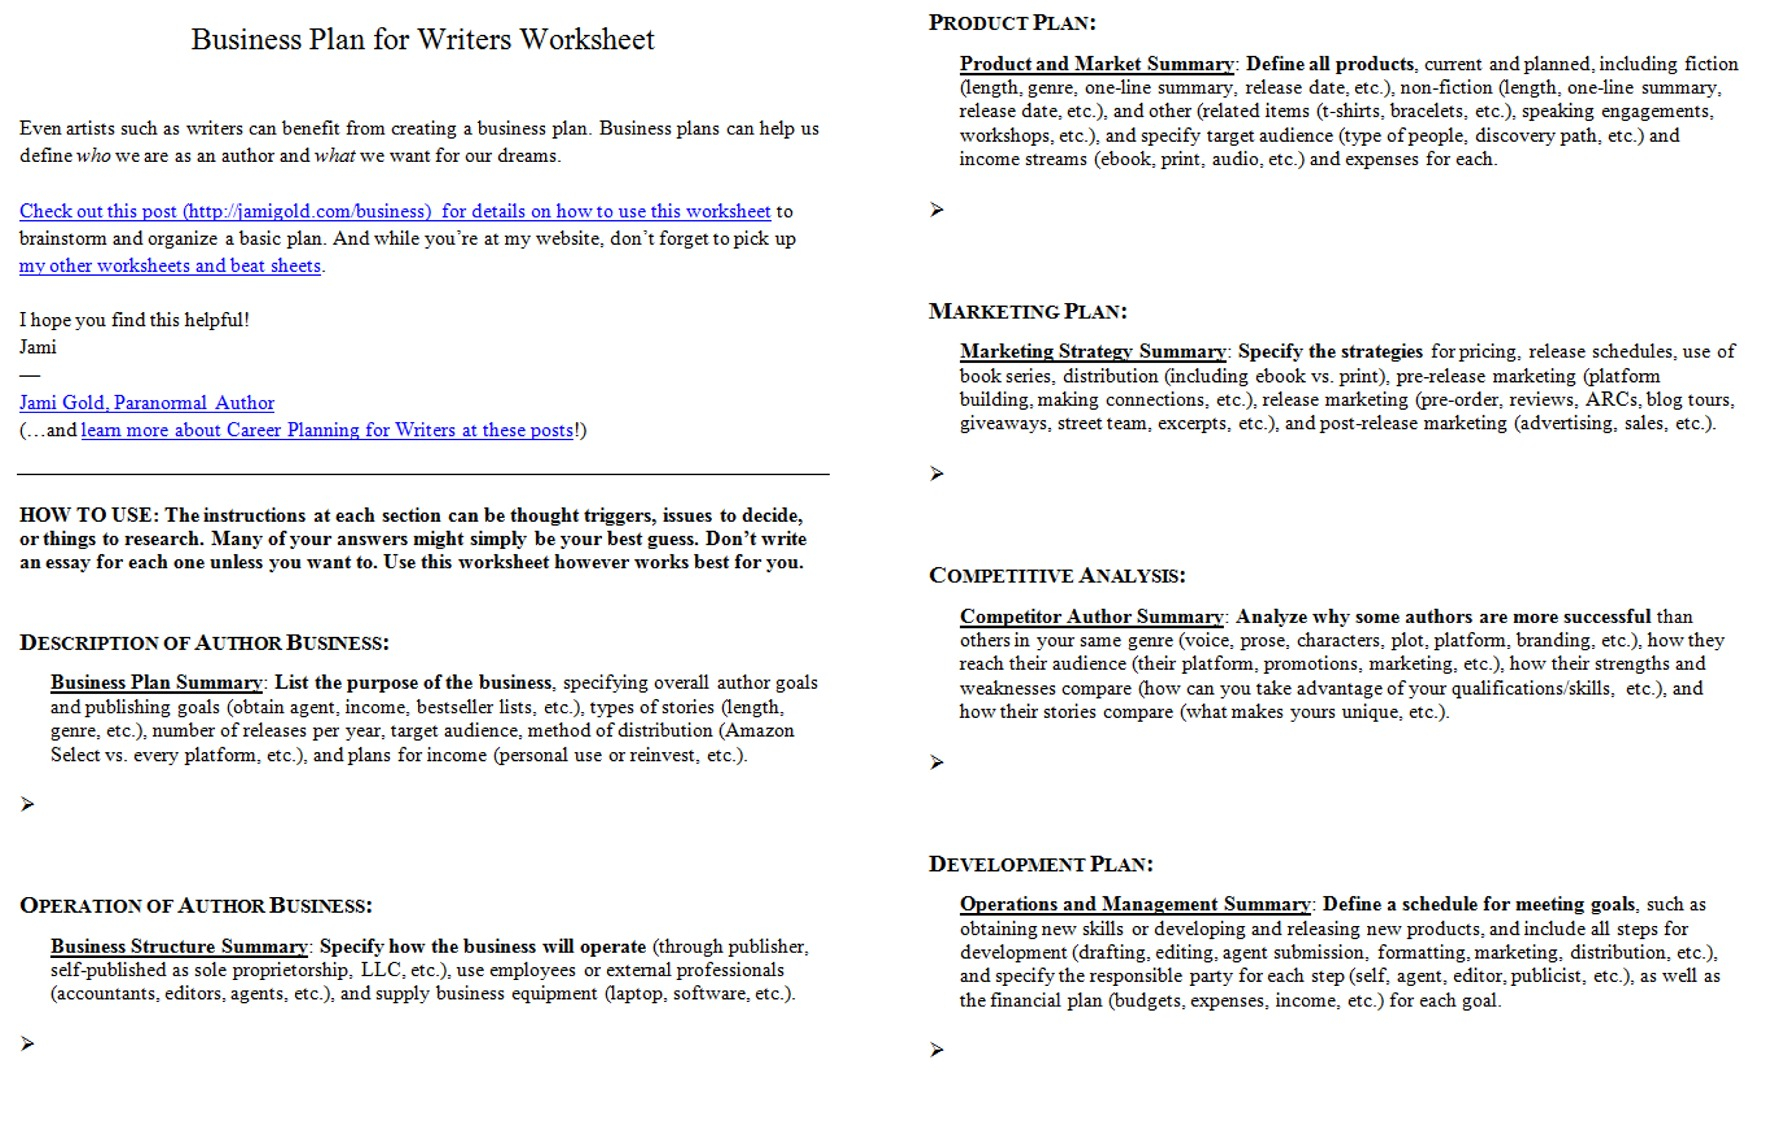 Aldiablosus  Personable Worksheets For Writers  Jami Gold Paranormal Author With Remarkable Screen Shot Of Both Pages Of The Business Plan For Writers Worksheet With Appealing Final Blends Worksheets Also Proving Triangles Congruent Worksheets In Addition Mixed Division And Multiplication Worksheets And Drivers Education Worksheets As Well As Addition Of Fractions Worksheet Additionally Multiplication Word Problems Rd Grade Worksheets From Jamigoldcom With Aldiablosus  Remarkable Worksheets For Writers  Jami Gold Paranormal Author With Appealing Screen Shot Of Both Pages Of The Business Plan For Writers Worksheet And Personable Final Blends Worksheets Also Proving Triangles Congruent Worksheets In Addition Mixed Division And Multiplication Worksheets From Jamigoldcom